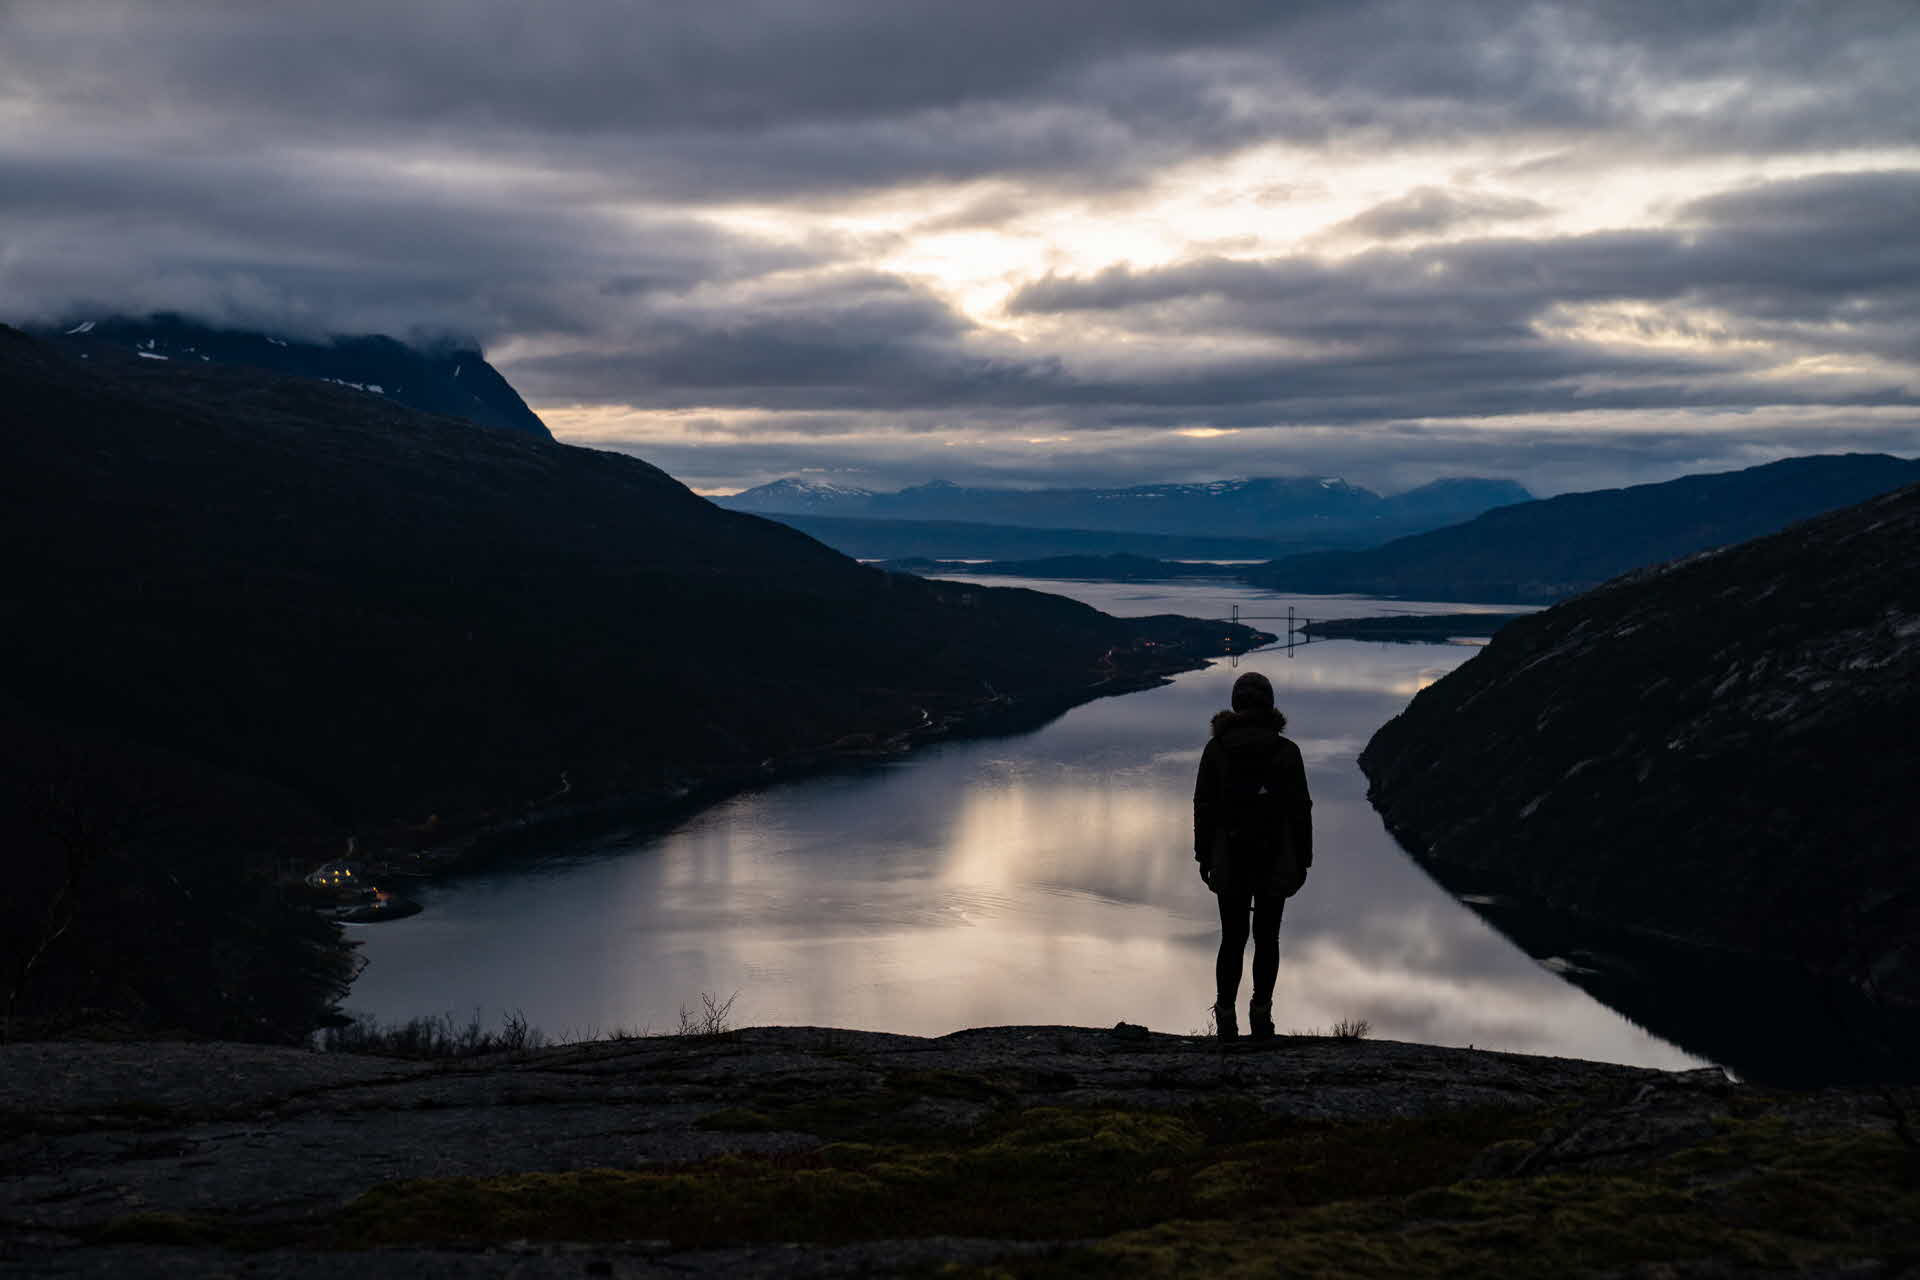 The silhouette of a woman as she stands on top of mountain late night by the Ofot railway overlooking the Rombakfjord